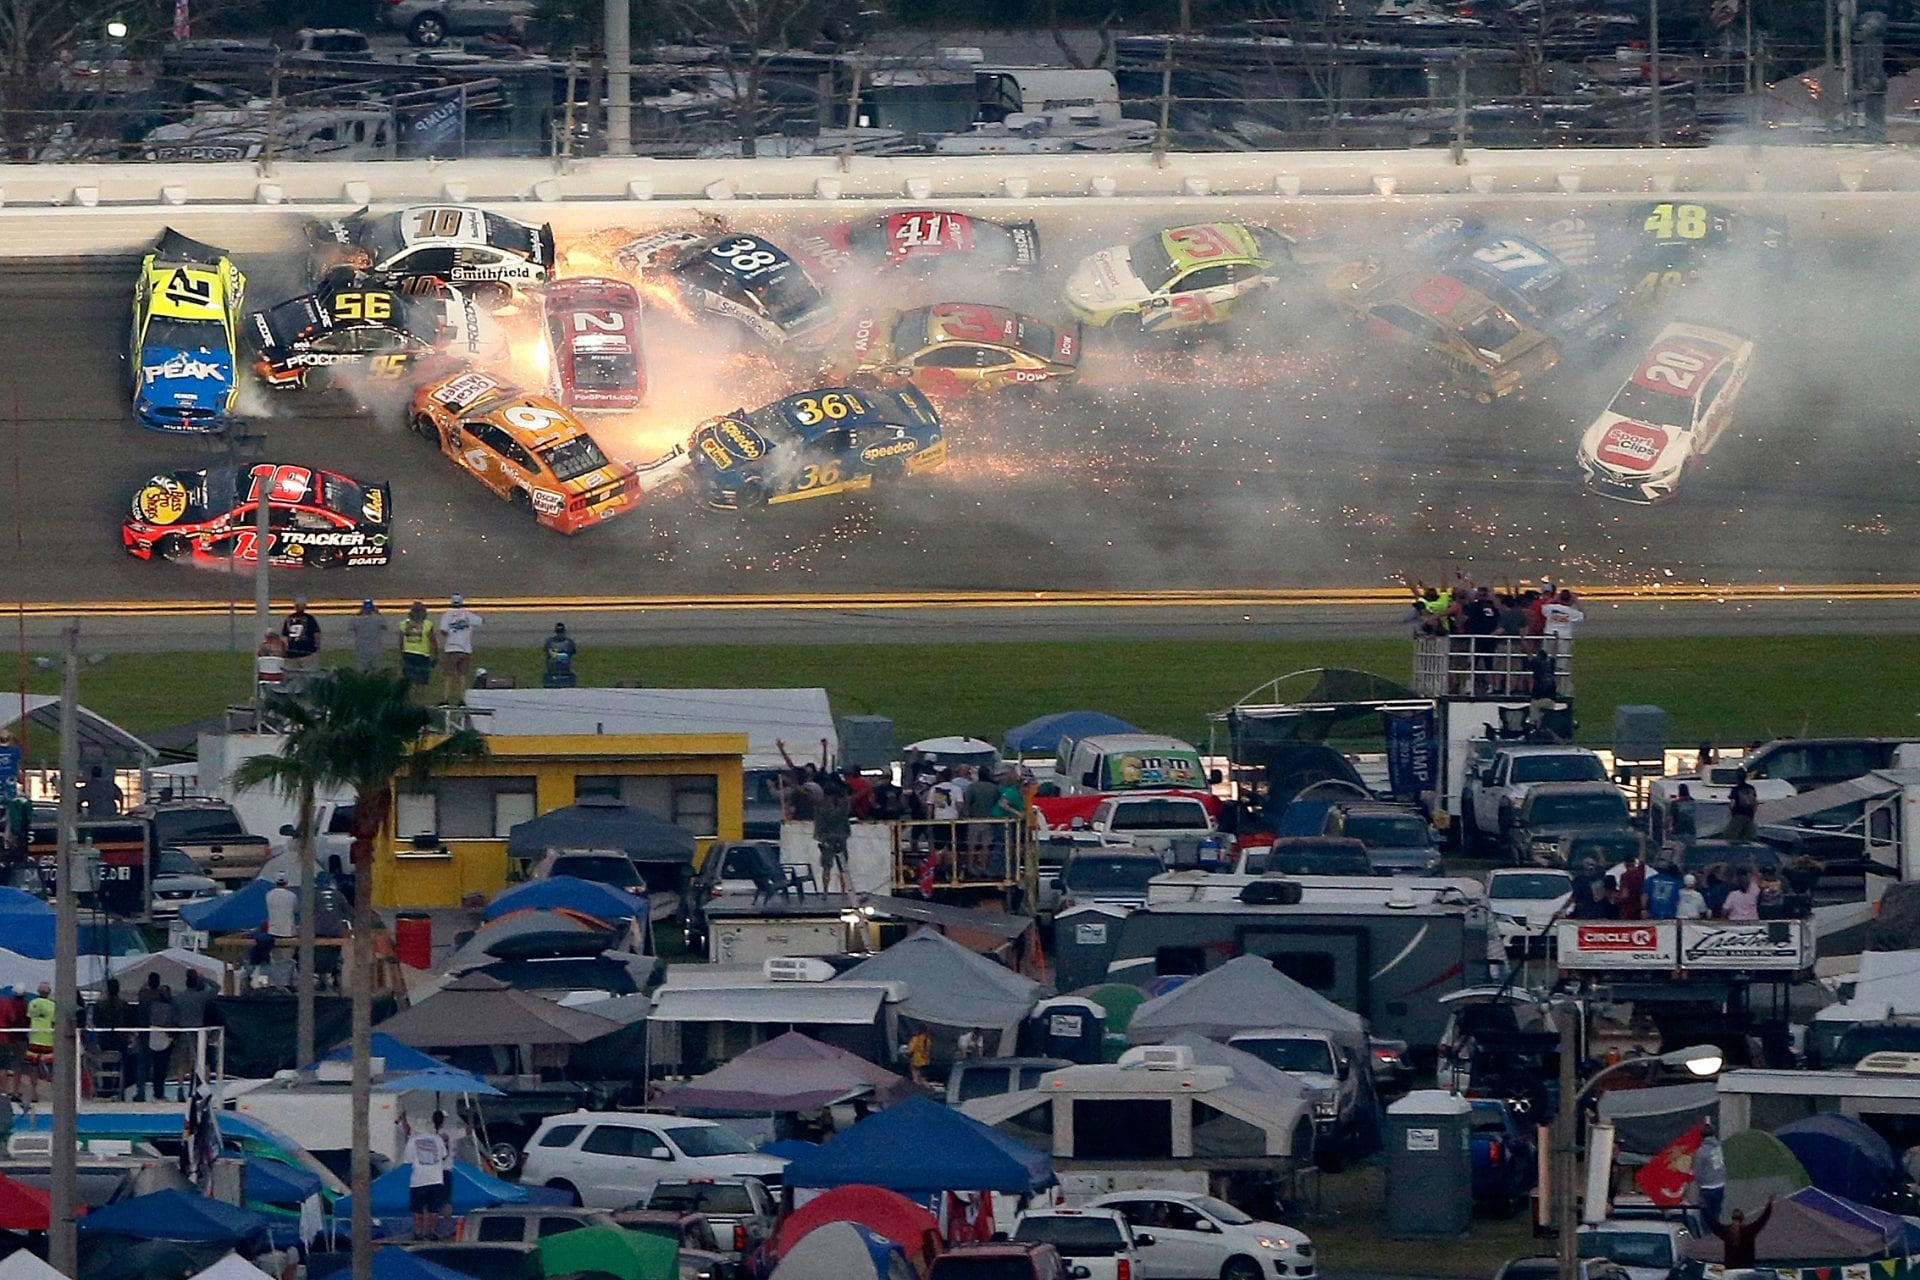 nascar, crashes, car racing